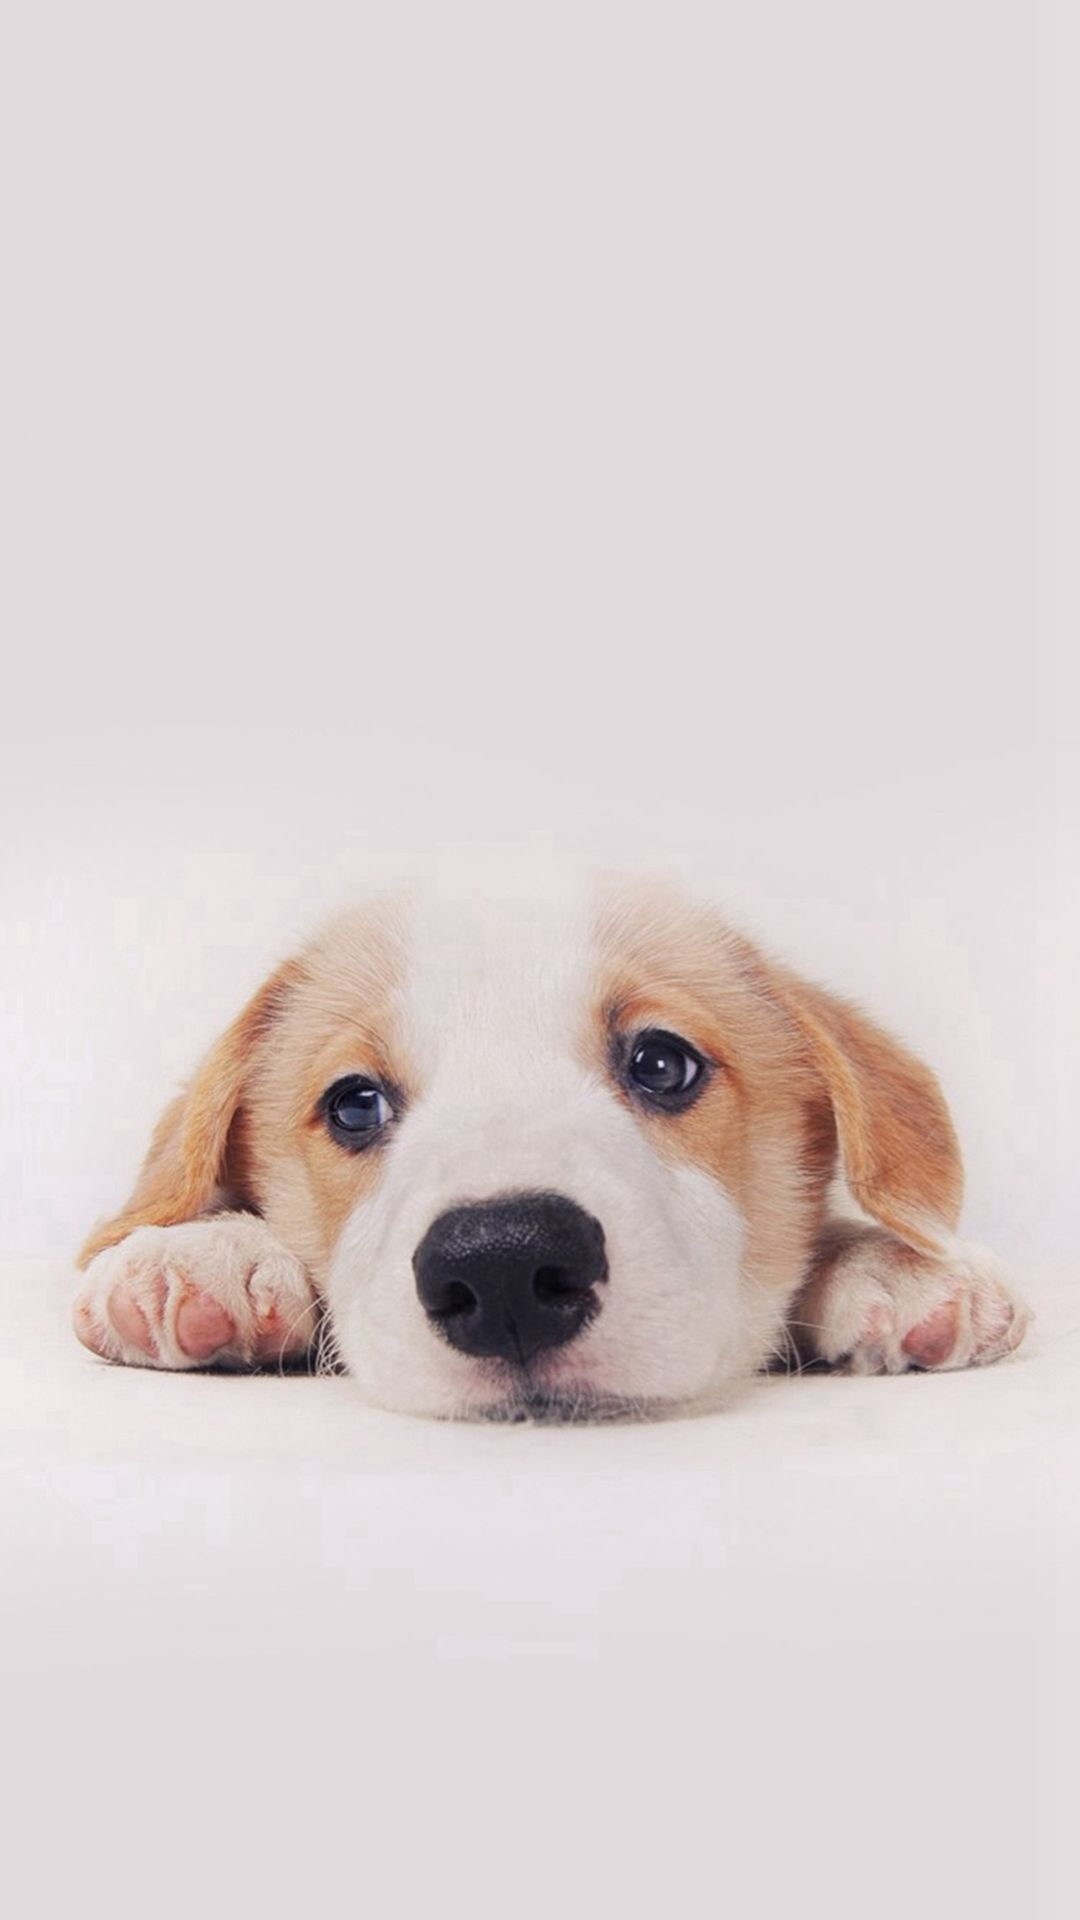 Cute Puppy Dog Pet #iPhone #6 #plus #wallpaper | iPhone 6~8 Wallpapers | Cute puppy wallpaper ...